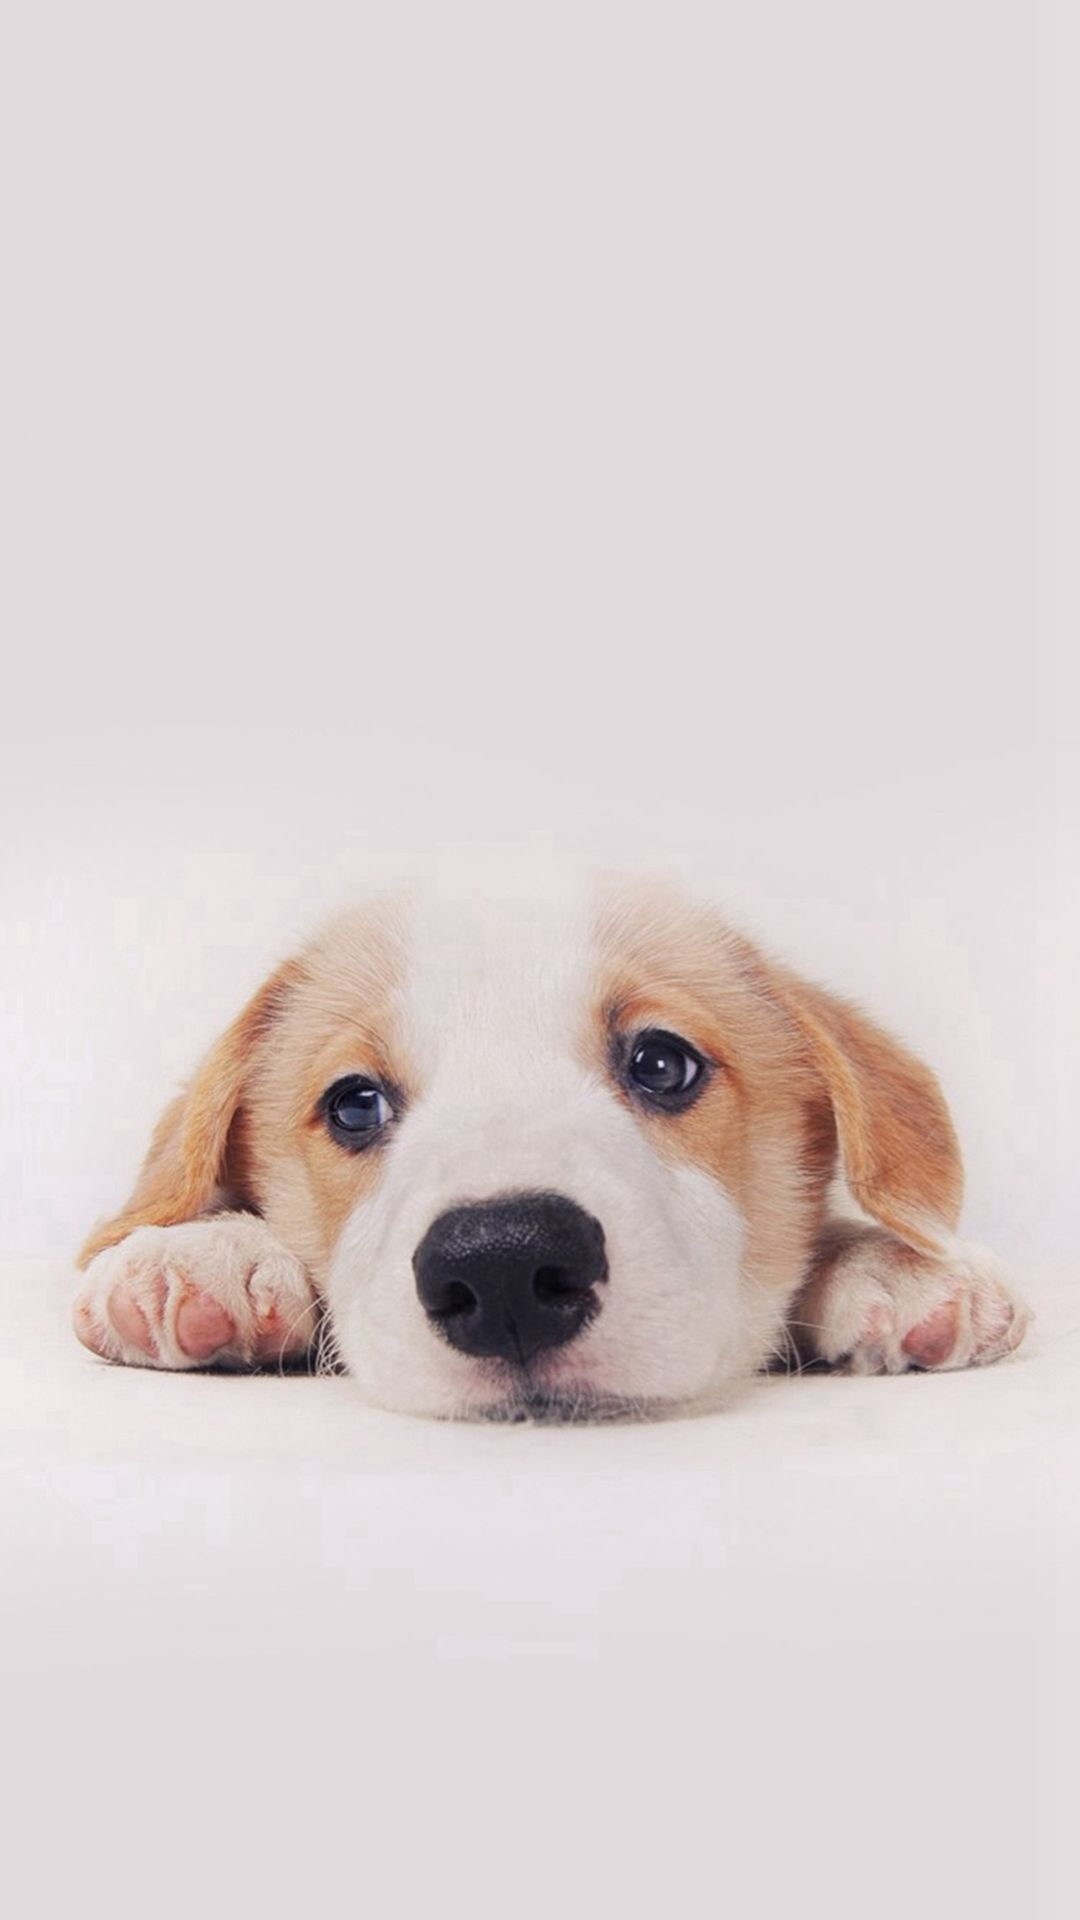 Cute Puppy Dog Pet #iPhone #6 #plus #wallpaper | iPhone 6~8 Wallpapers | Cute puppy wallpaper ...